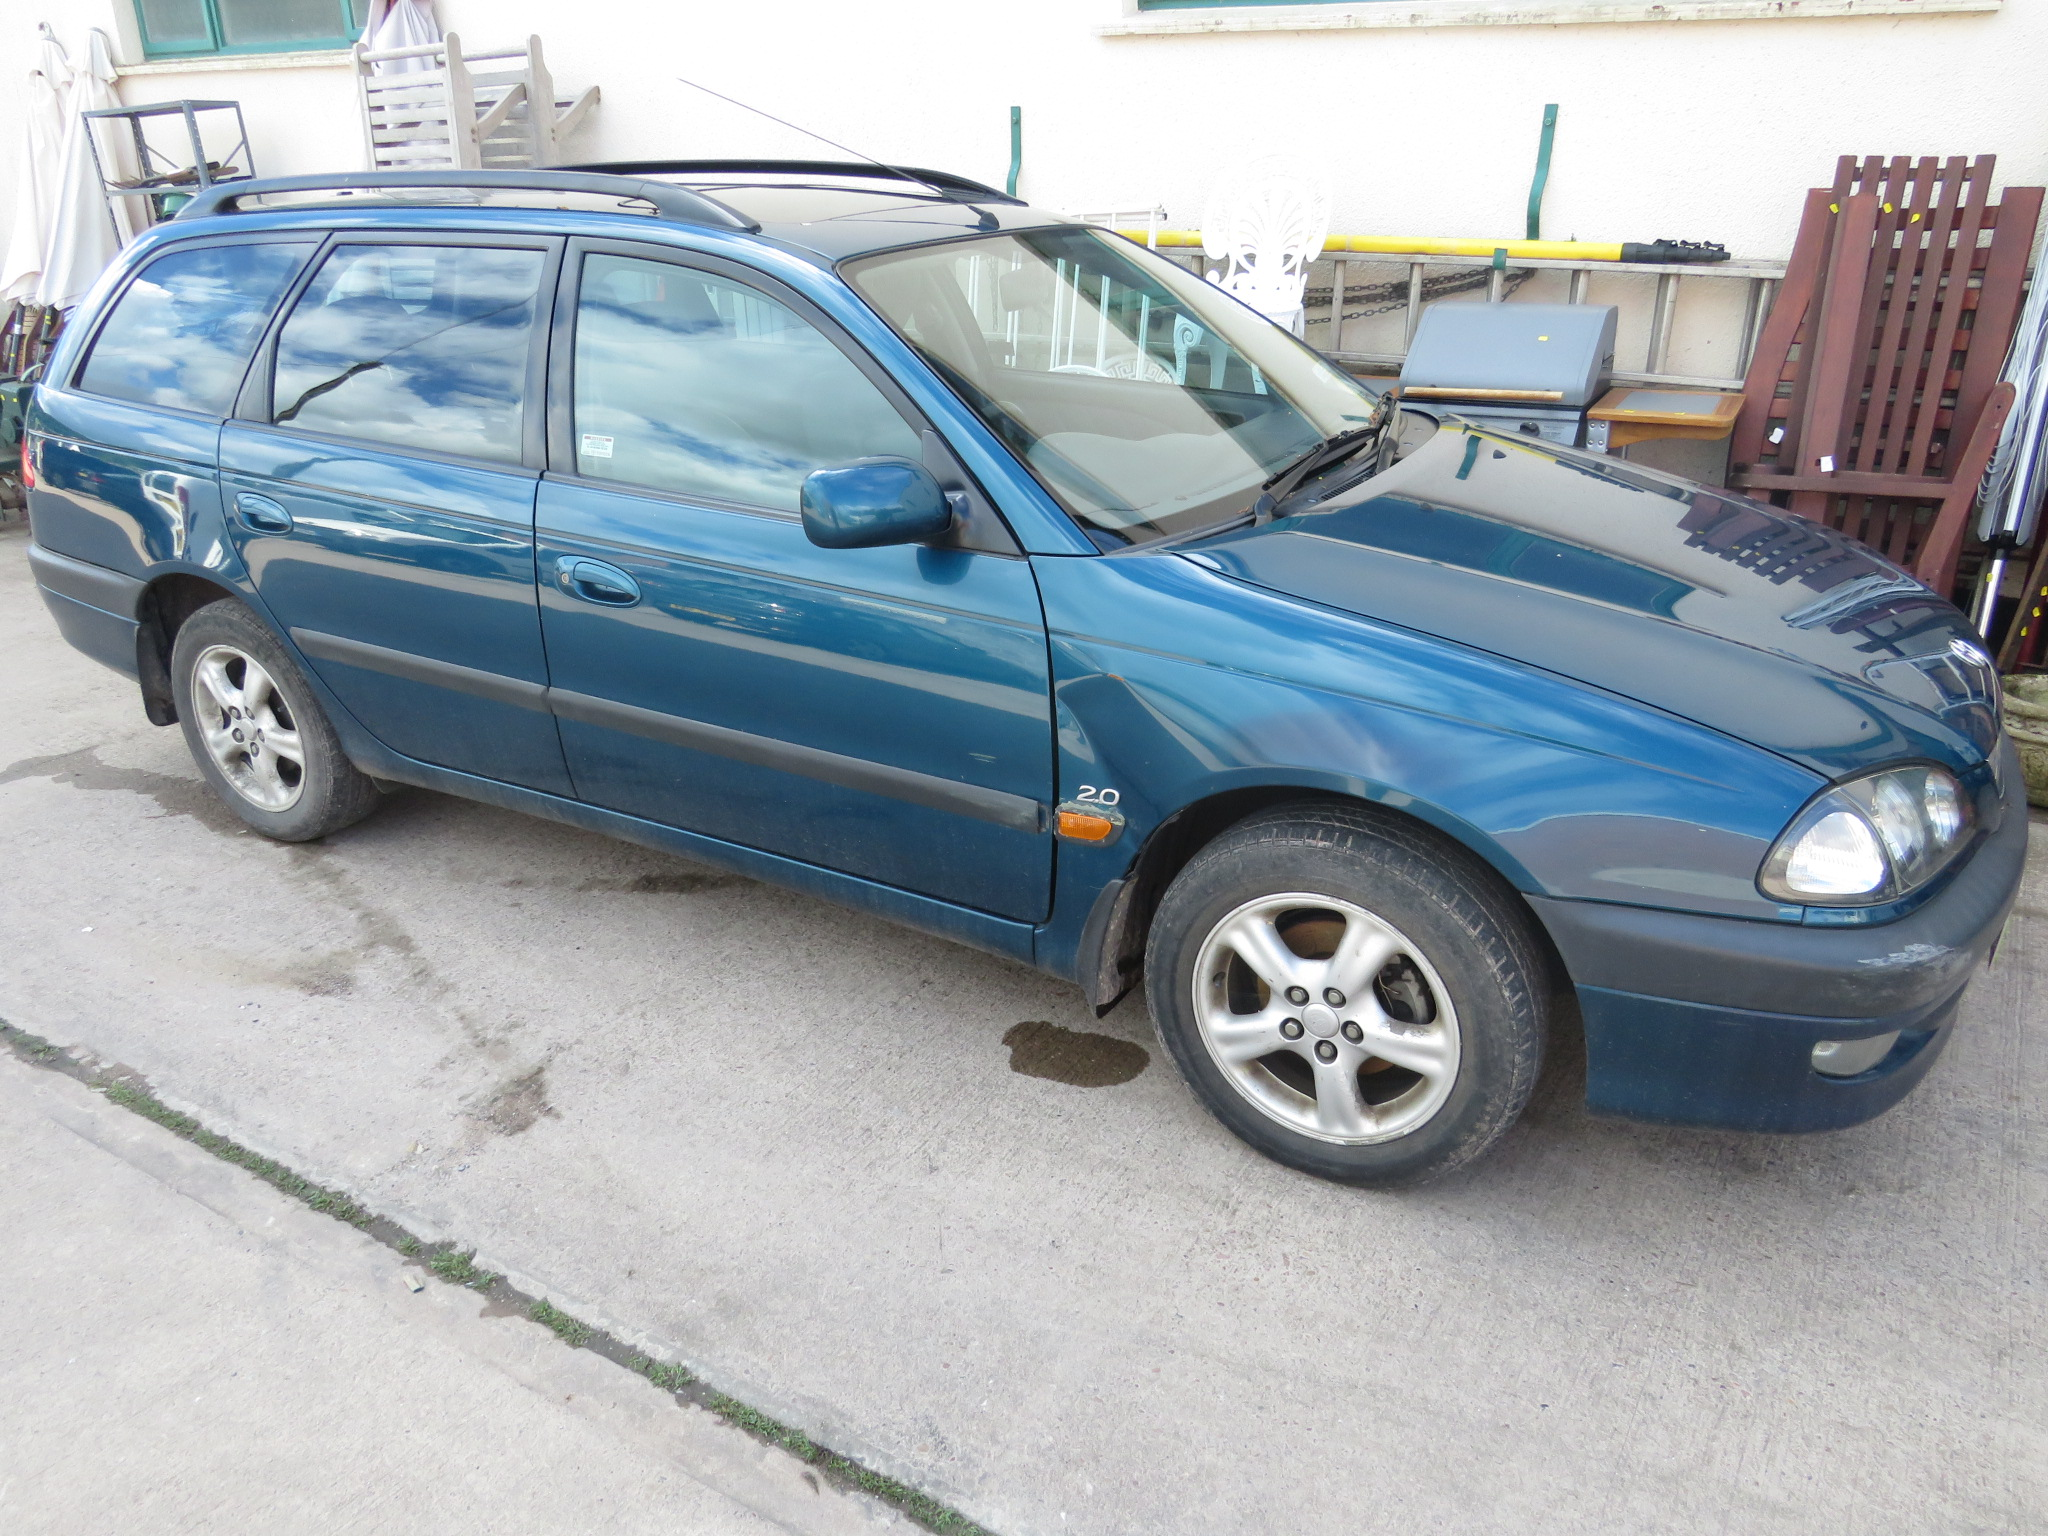 Lot 2 - BLUE TOYOTA AVENSIS CDX AUTOMATIC FIVE DOOR ESTATE, T480FOD REGISTERED 01/05/1999, 1998CC PETROL